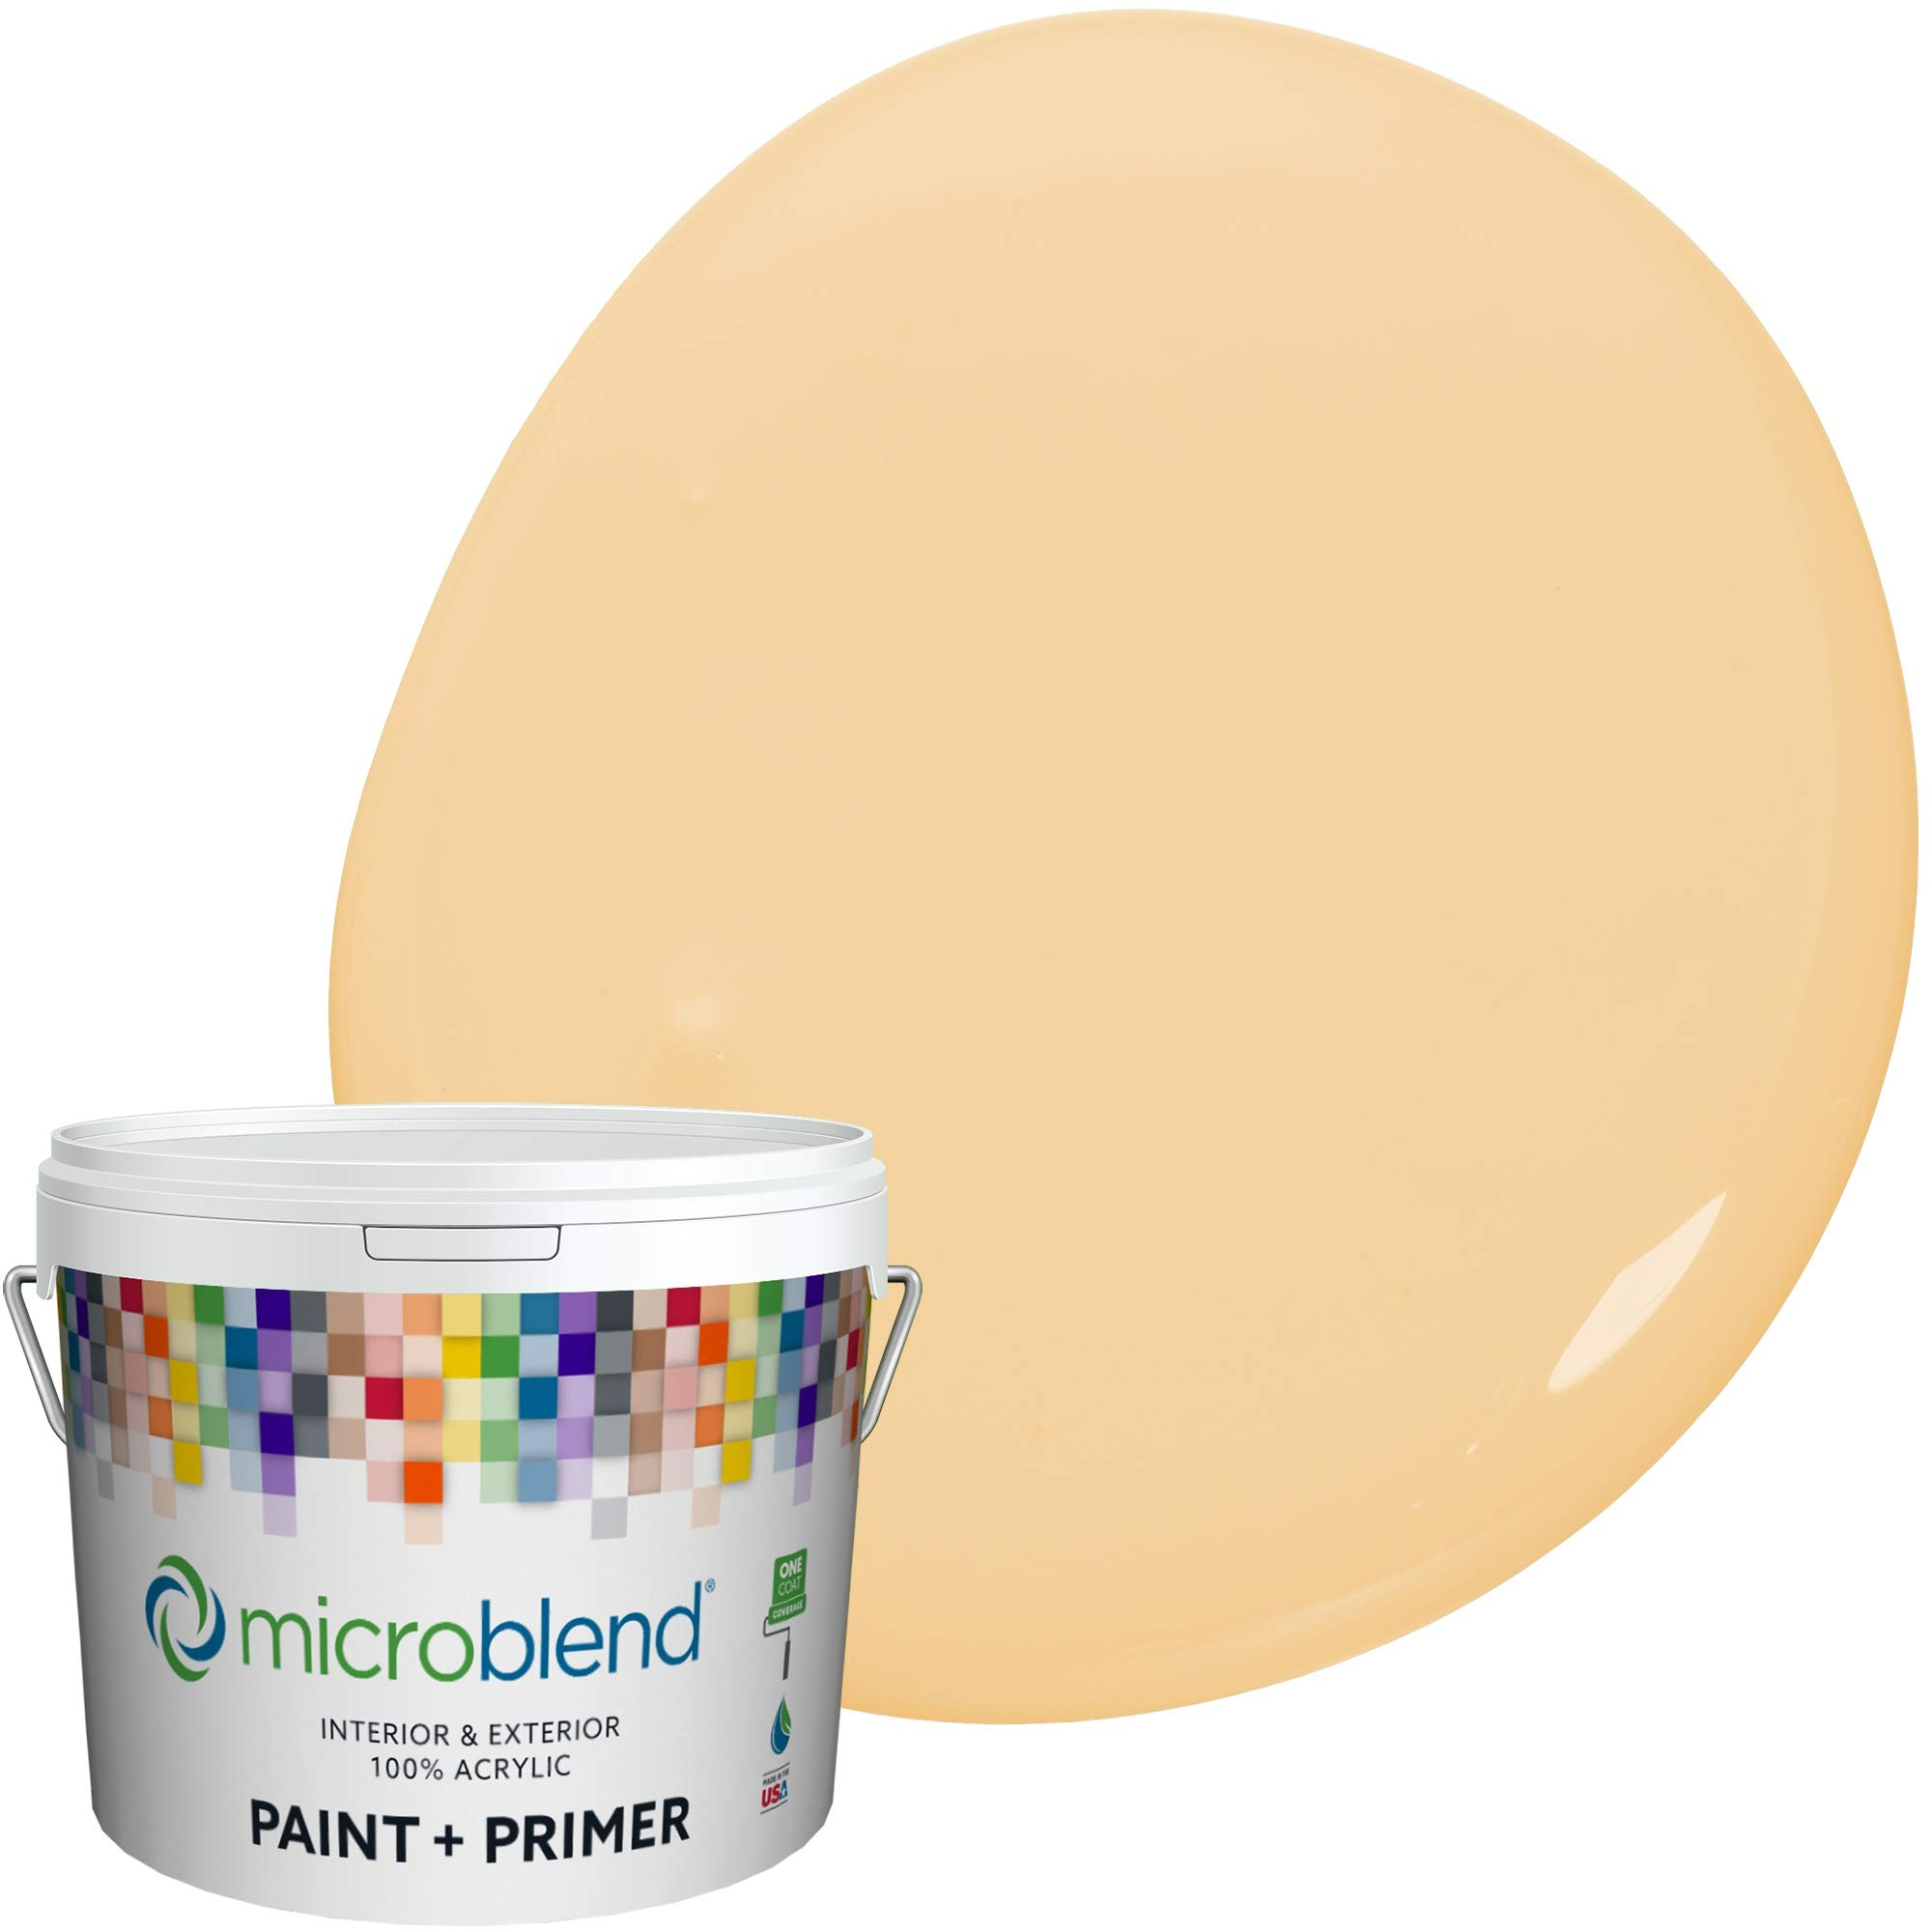 MicroBlend Interior Paint + Primer, Sundrenched Sand, Semi-Gloss Sheen, 1 Gallon, Custom Made, Premium Quality One Coat Hide & Washable Paint (73241-2-M0966B3(C))